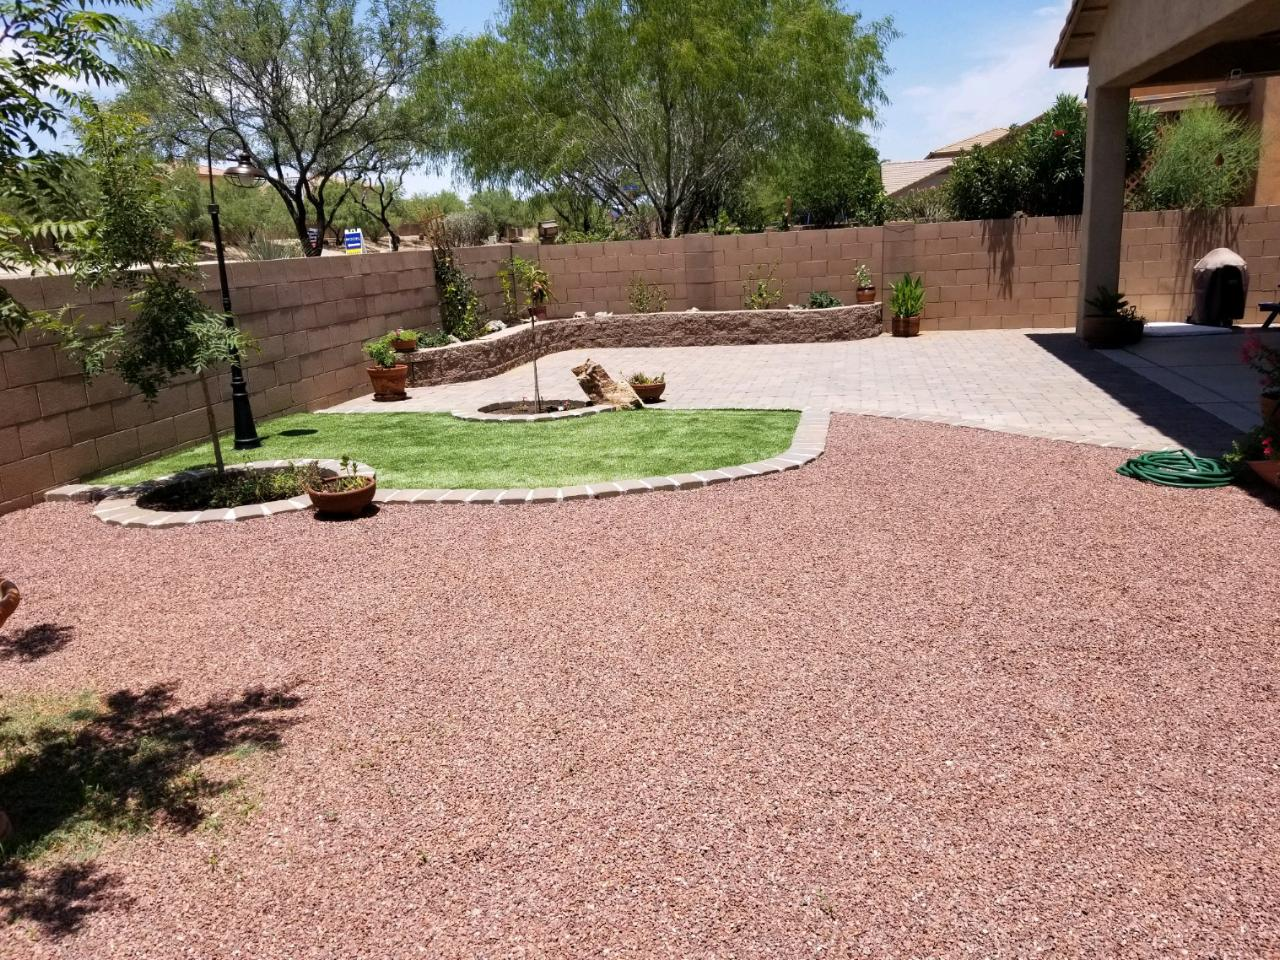 Gravel, Turf, Paver Patio and Planter